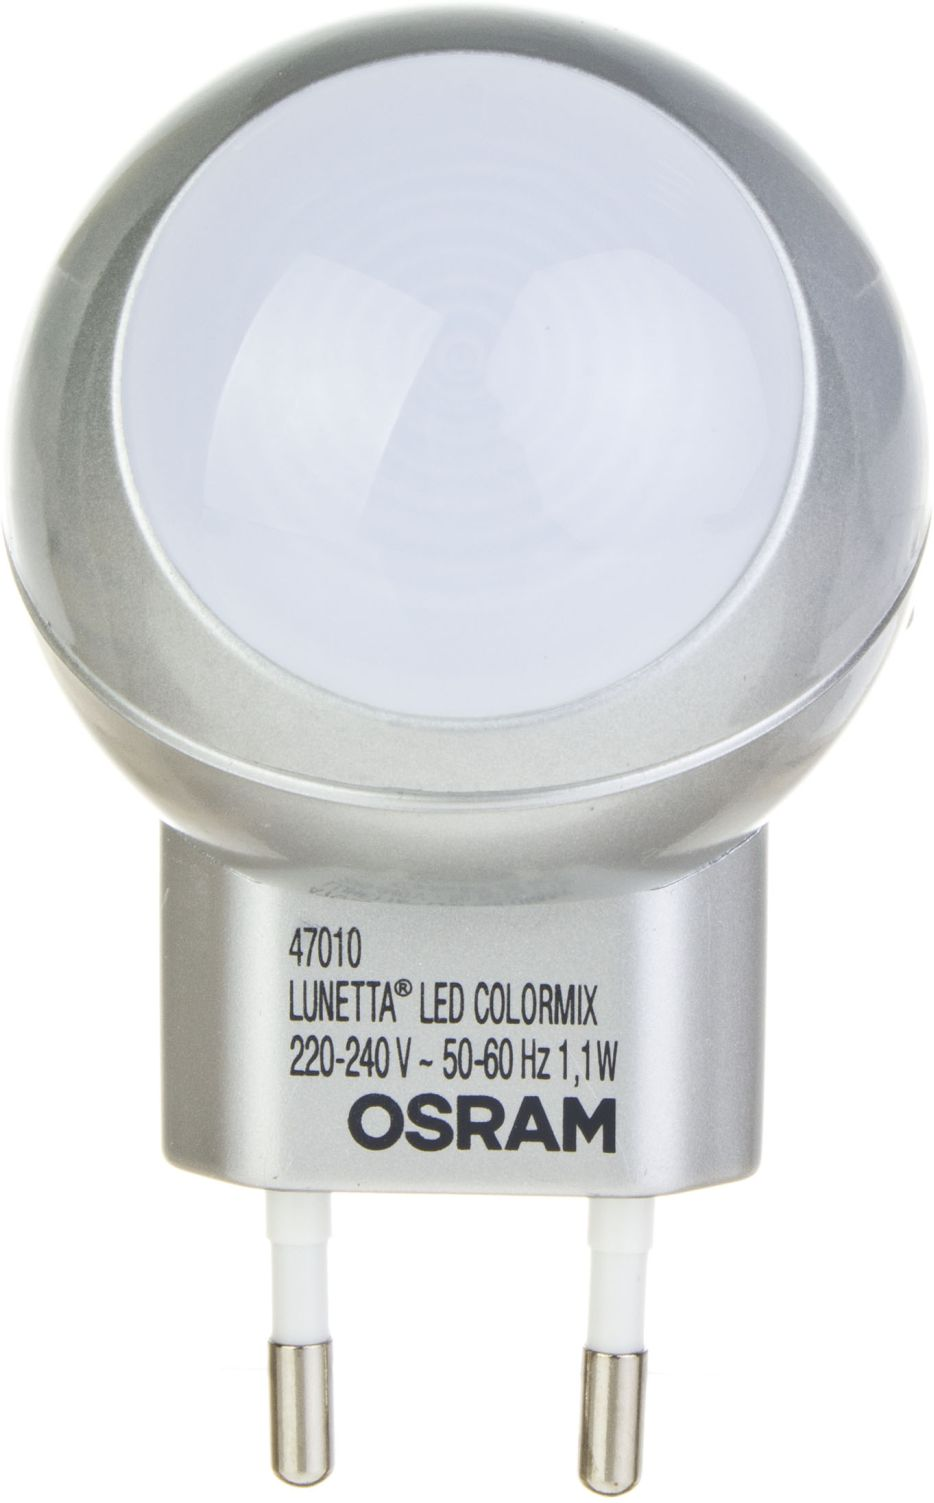 LUNETTA LED COLORMIX SI Osram